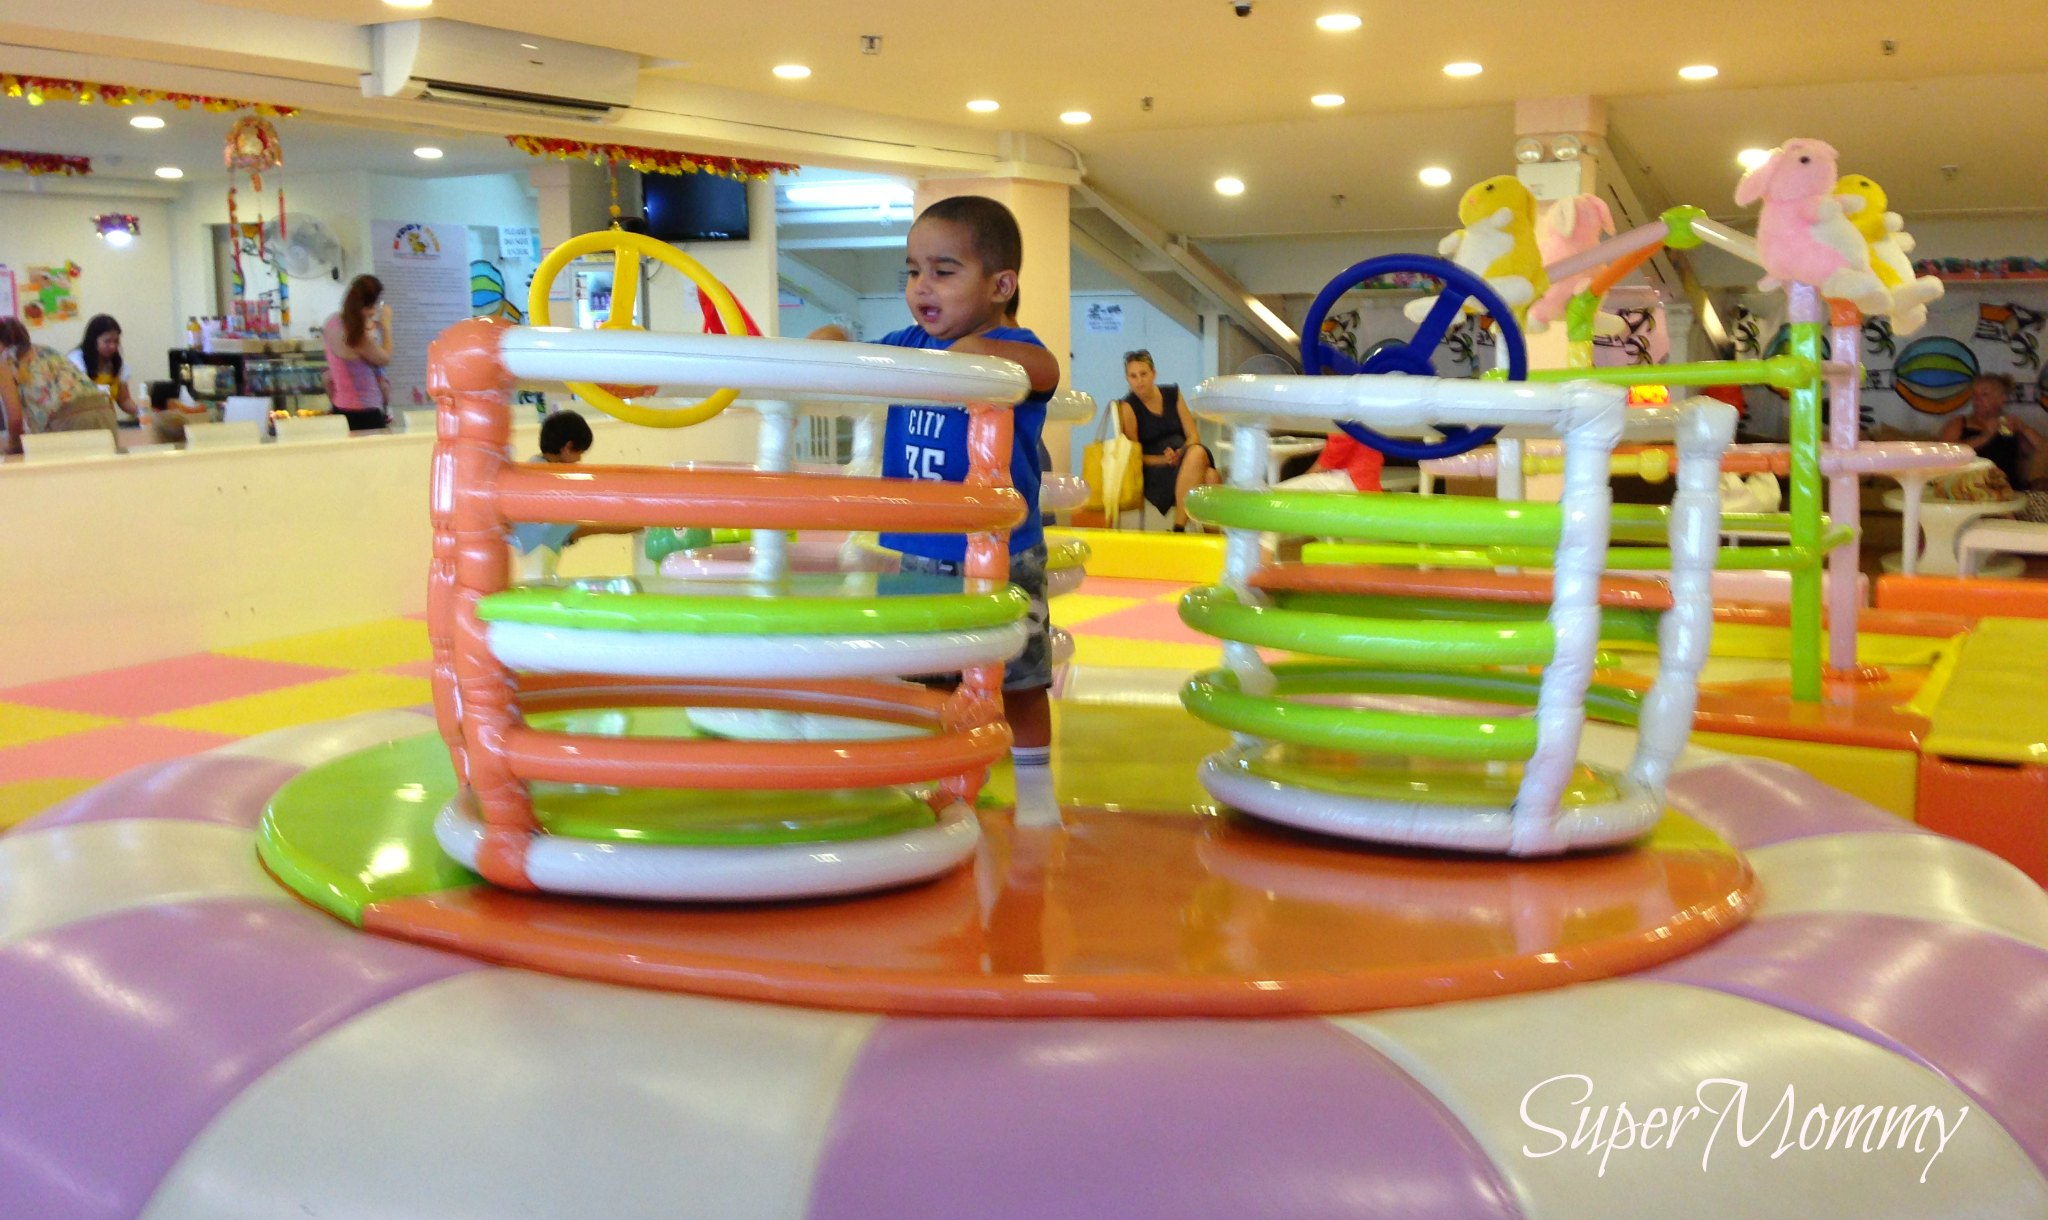 Indoor Children Playground: 25+ Singapore Indoor Playgrounds For Babies, Toddlers & Kids